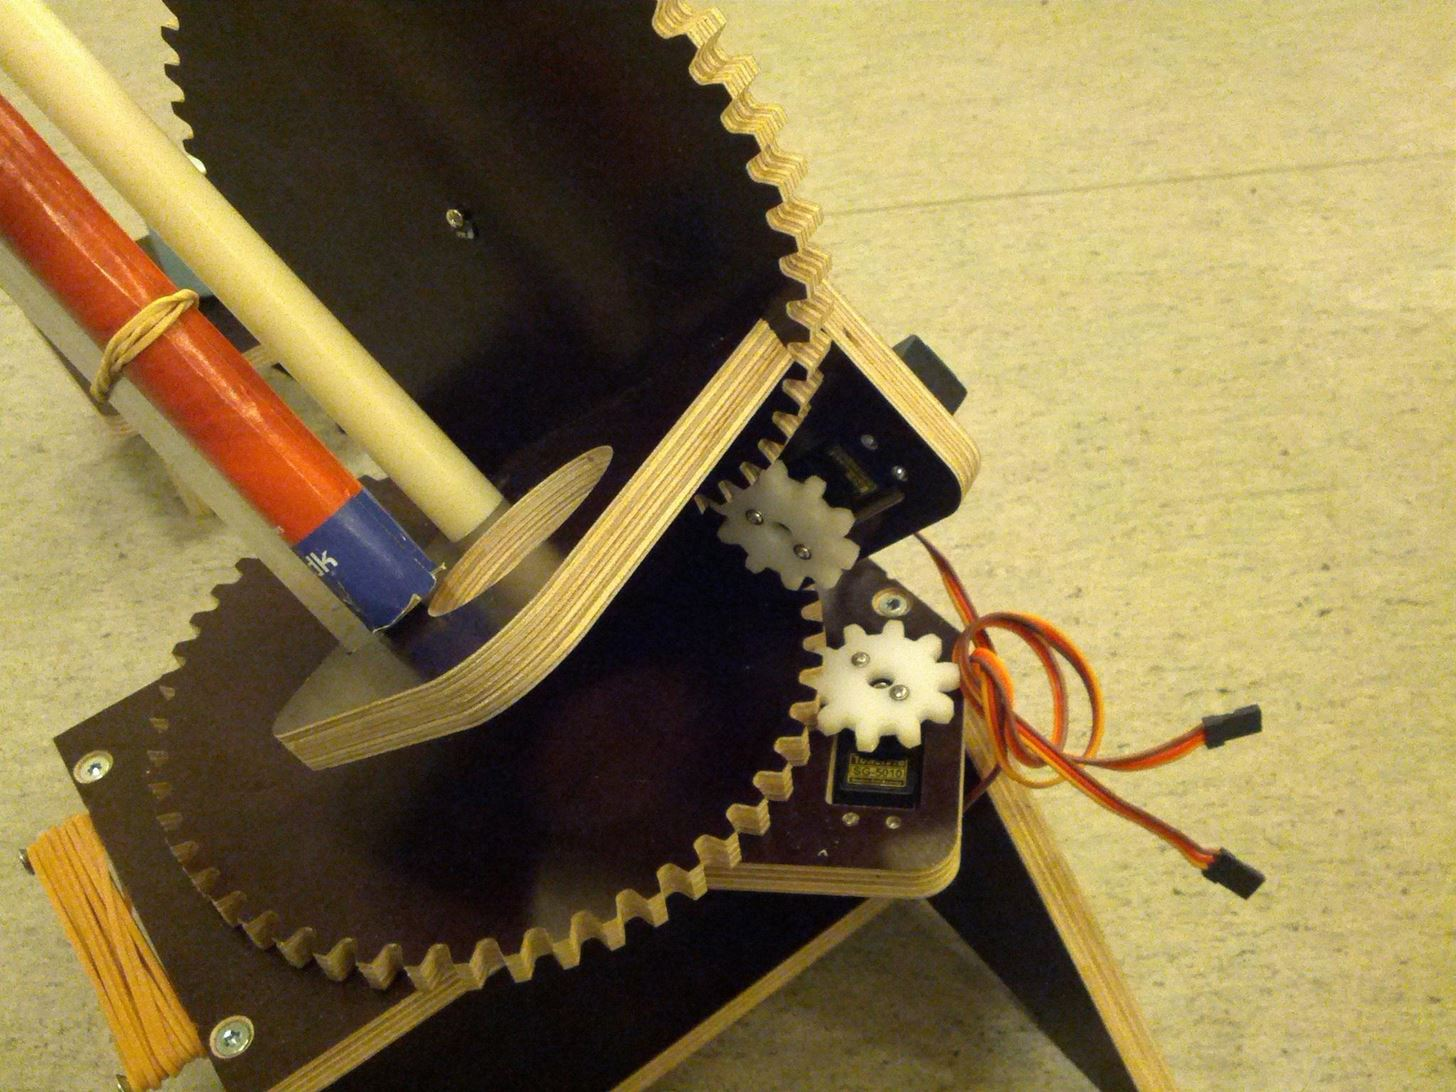 This DIY Remote-Controlled Launcher Lets You Light and Wave Fireworks from a Safe Distance